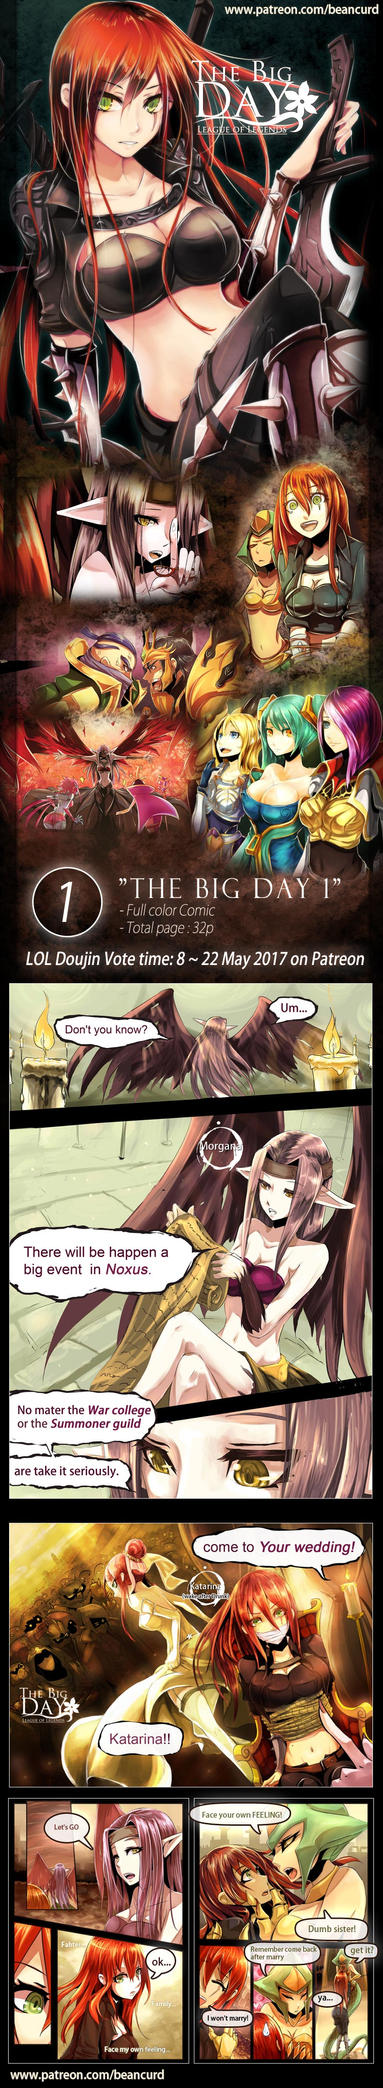 Doujin translate voting : No.1  THE BIG DAY 1 by beanbeancurd